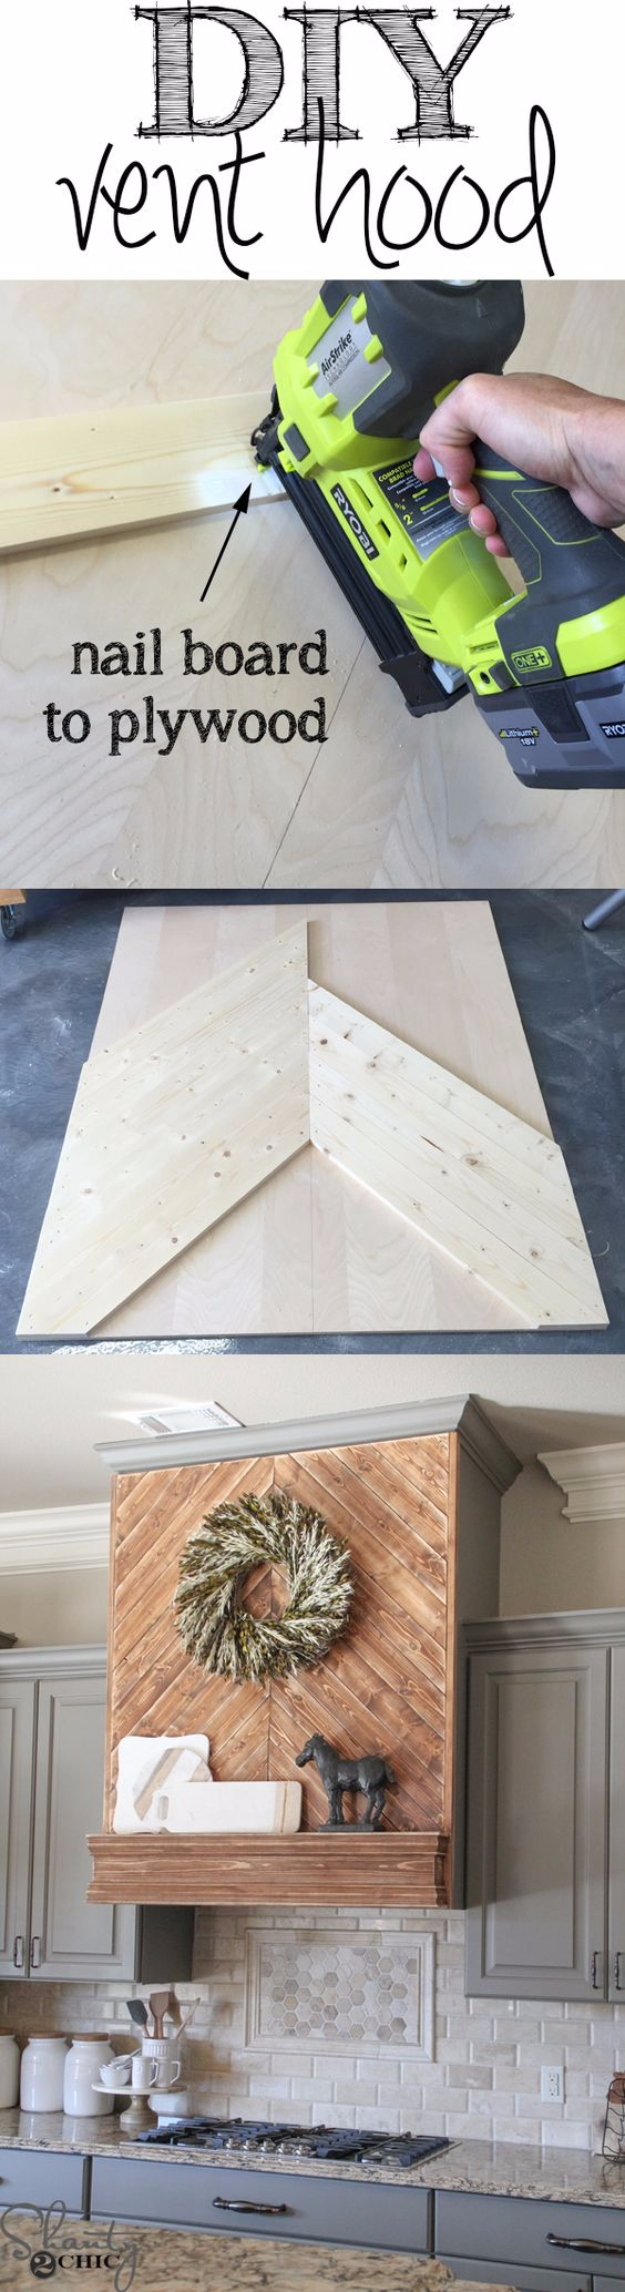 DIY Kitchen Makeover Ideas - DIY Wooden Vent Hood - Cheap Projects Projects You Can Make On A Budget - Cabinets, Counter Tops, Paint Tutorials, Islands and Faux Granite. Tutorials and Step by Step Instructions